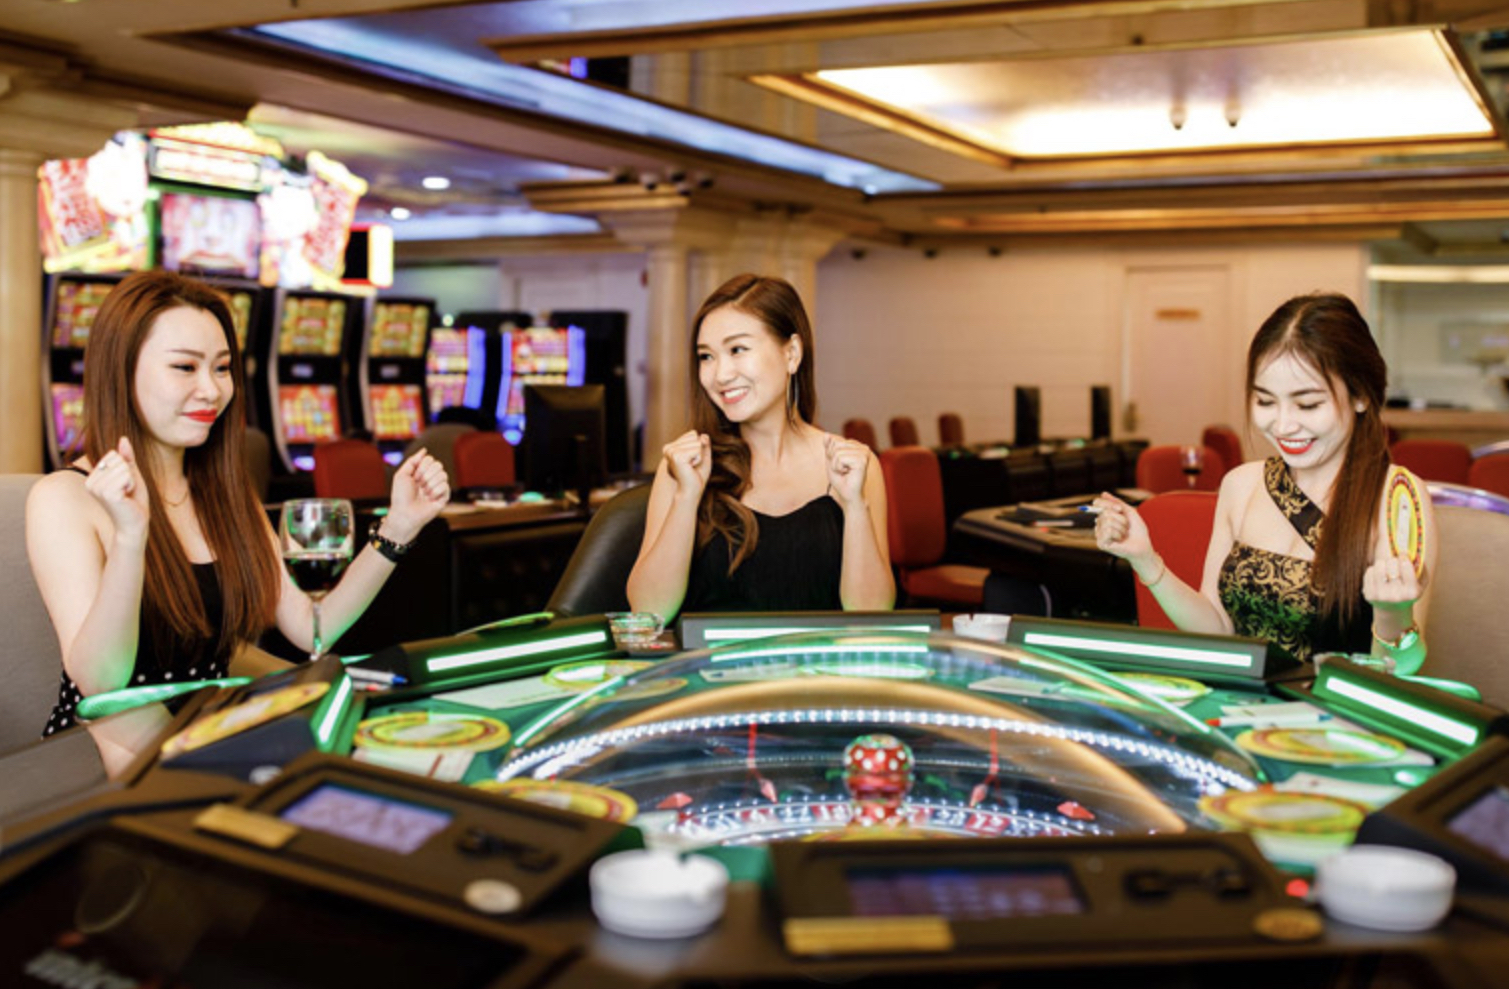 Want to research the Singapore lottery based gambling facilities in Indonesia